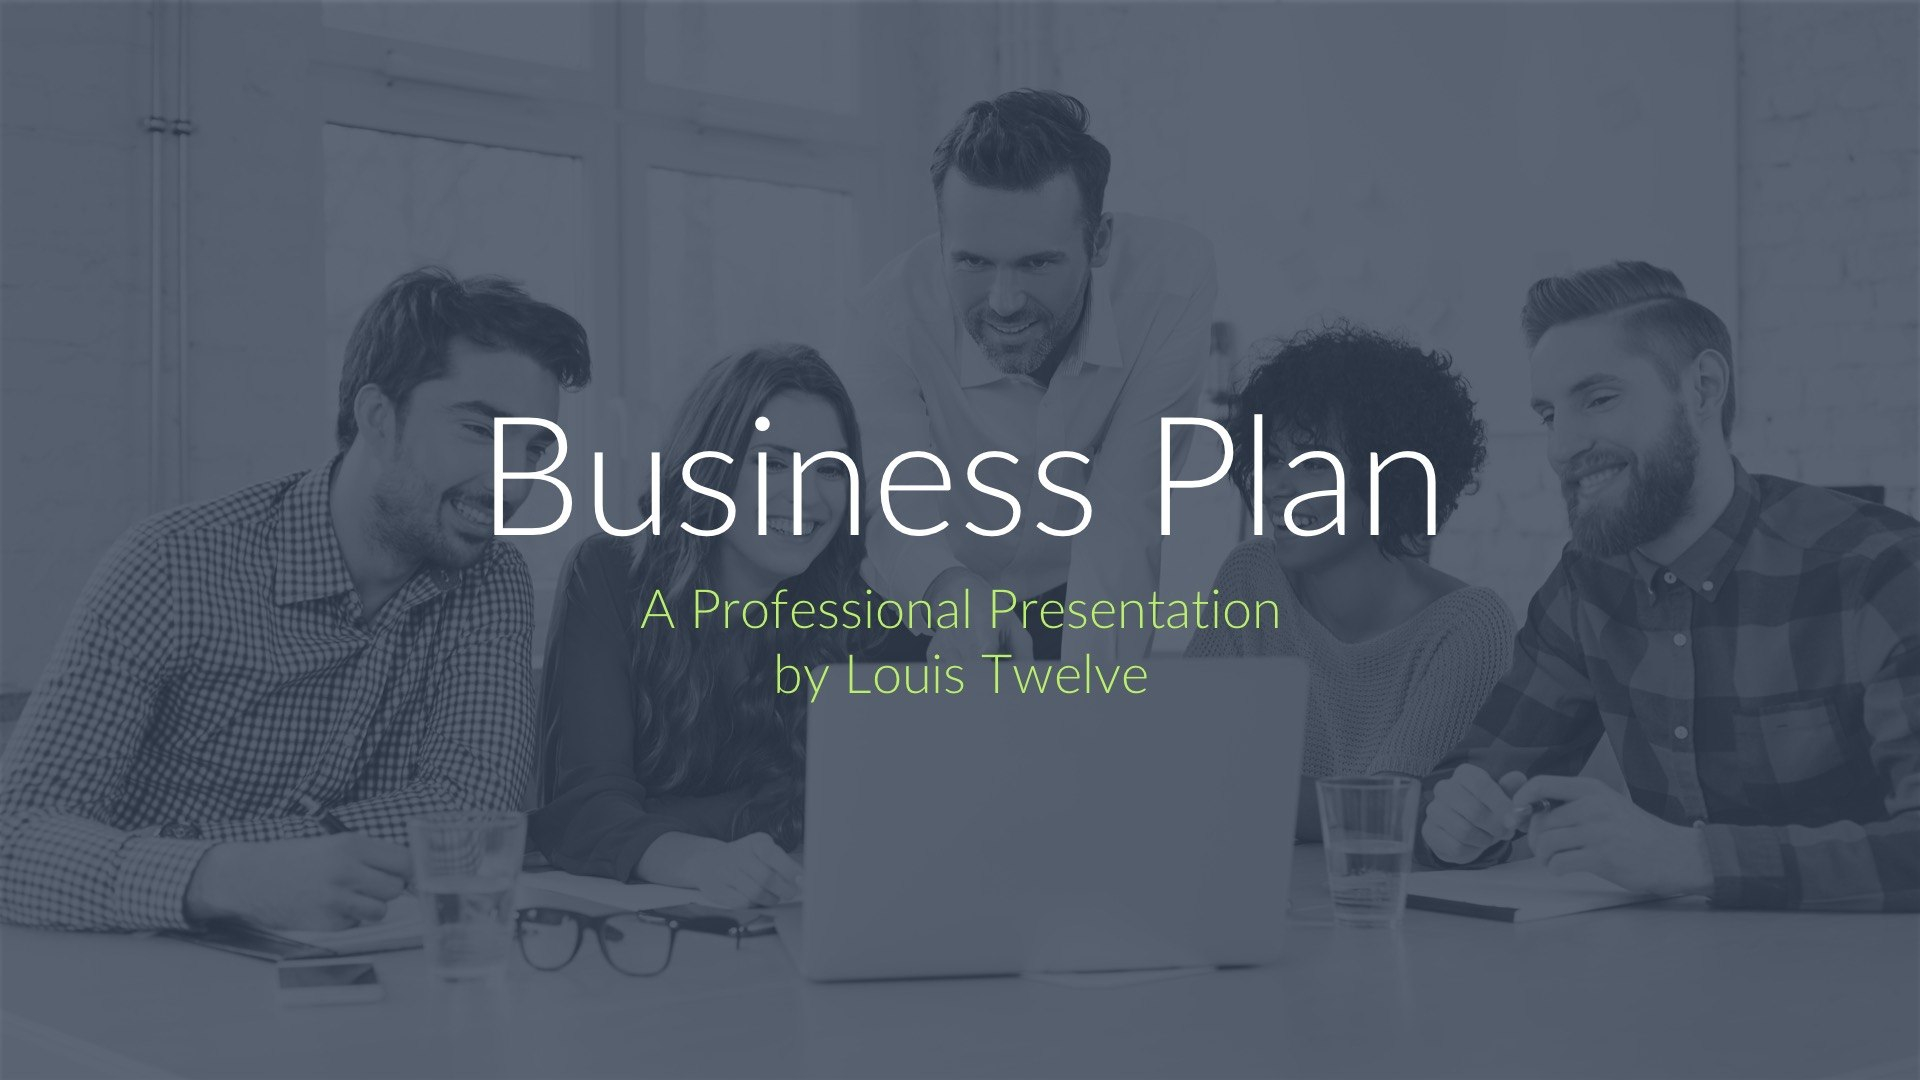 Free Business Plan Powerpoint Template  Ppt Presentation Theme In Business Plan Presentation Template Ppt